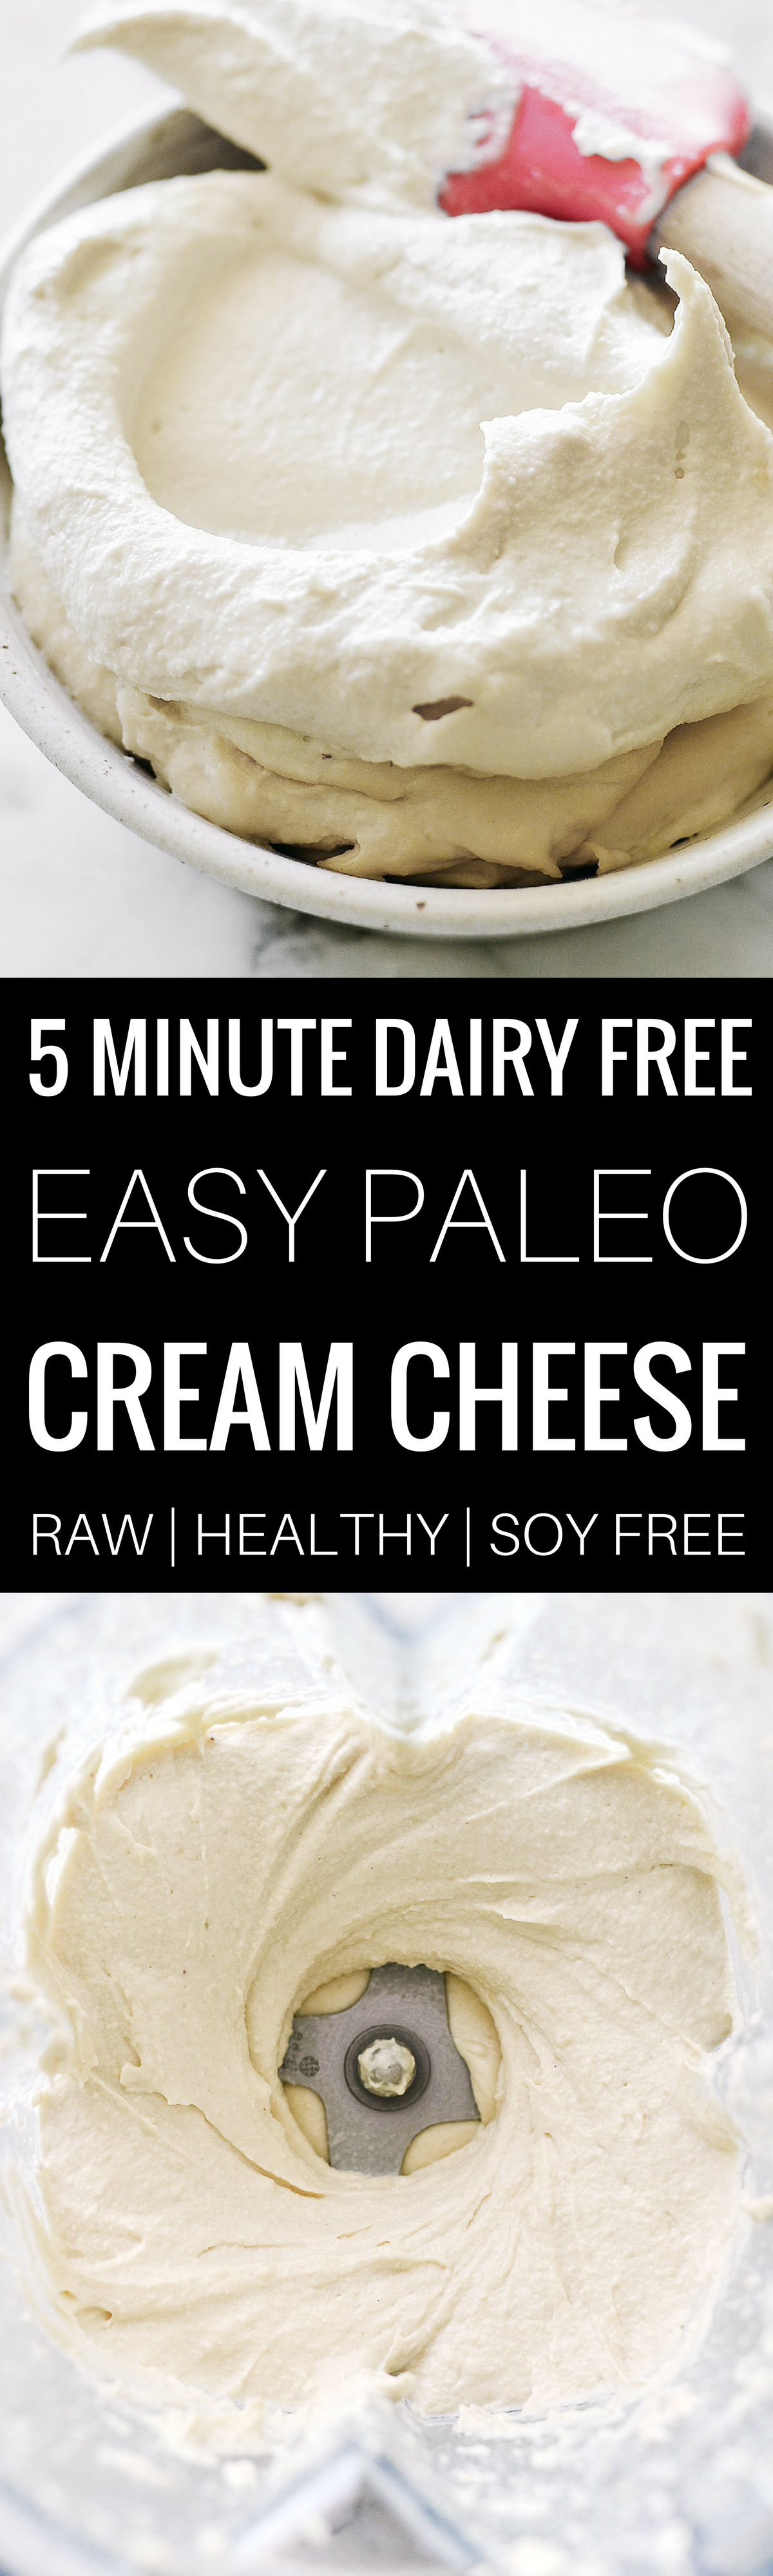 Easy dairy free, vegan, and paleo cream cheese recipe. Soy free, made in 5 minutes, and able to store in the fridge for 1 week. Addictively creamy and a perfect addition to any recipe- savory or sweet! Paleo cream cheese recipe. Easy paleo cheese recipe.